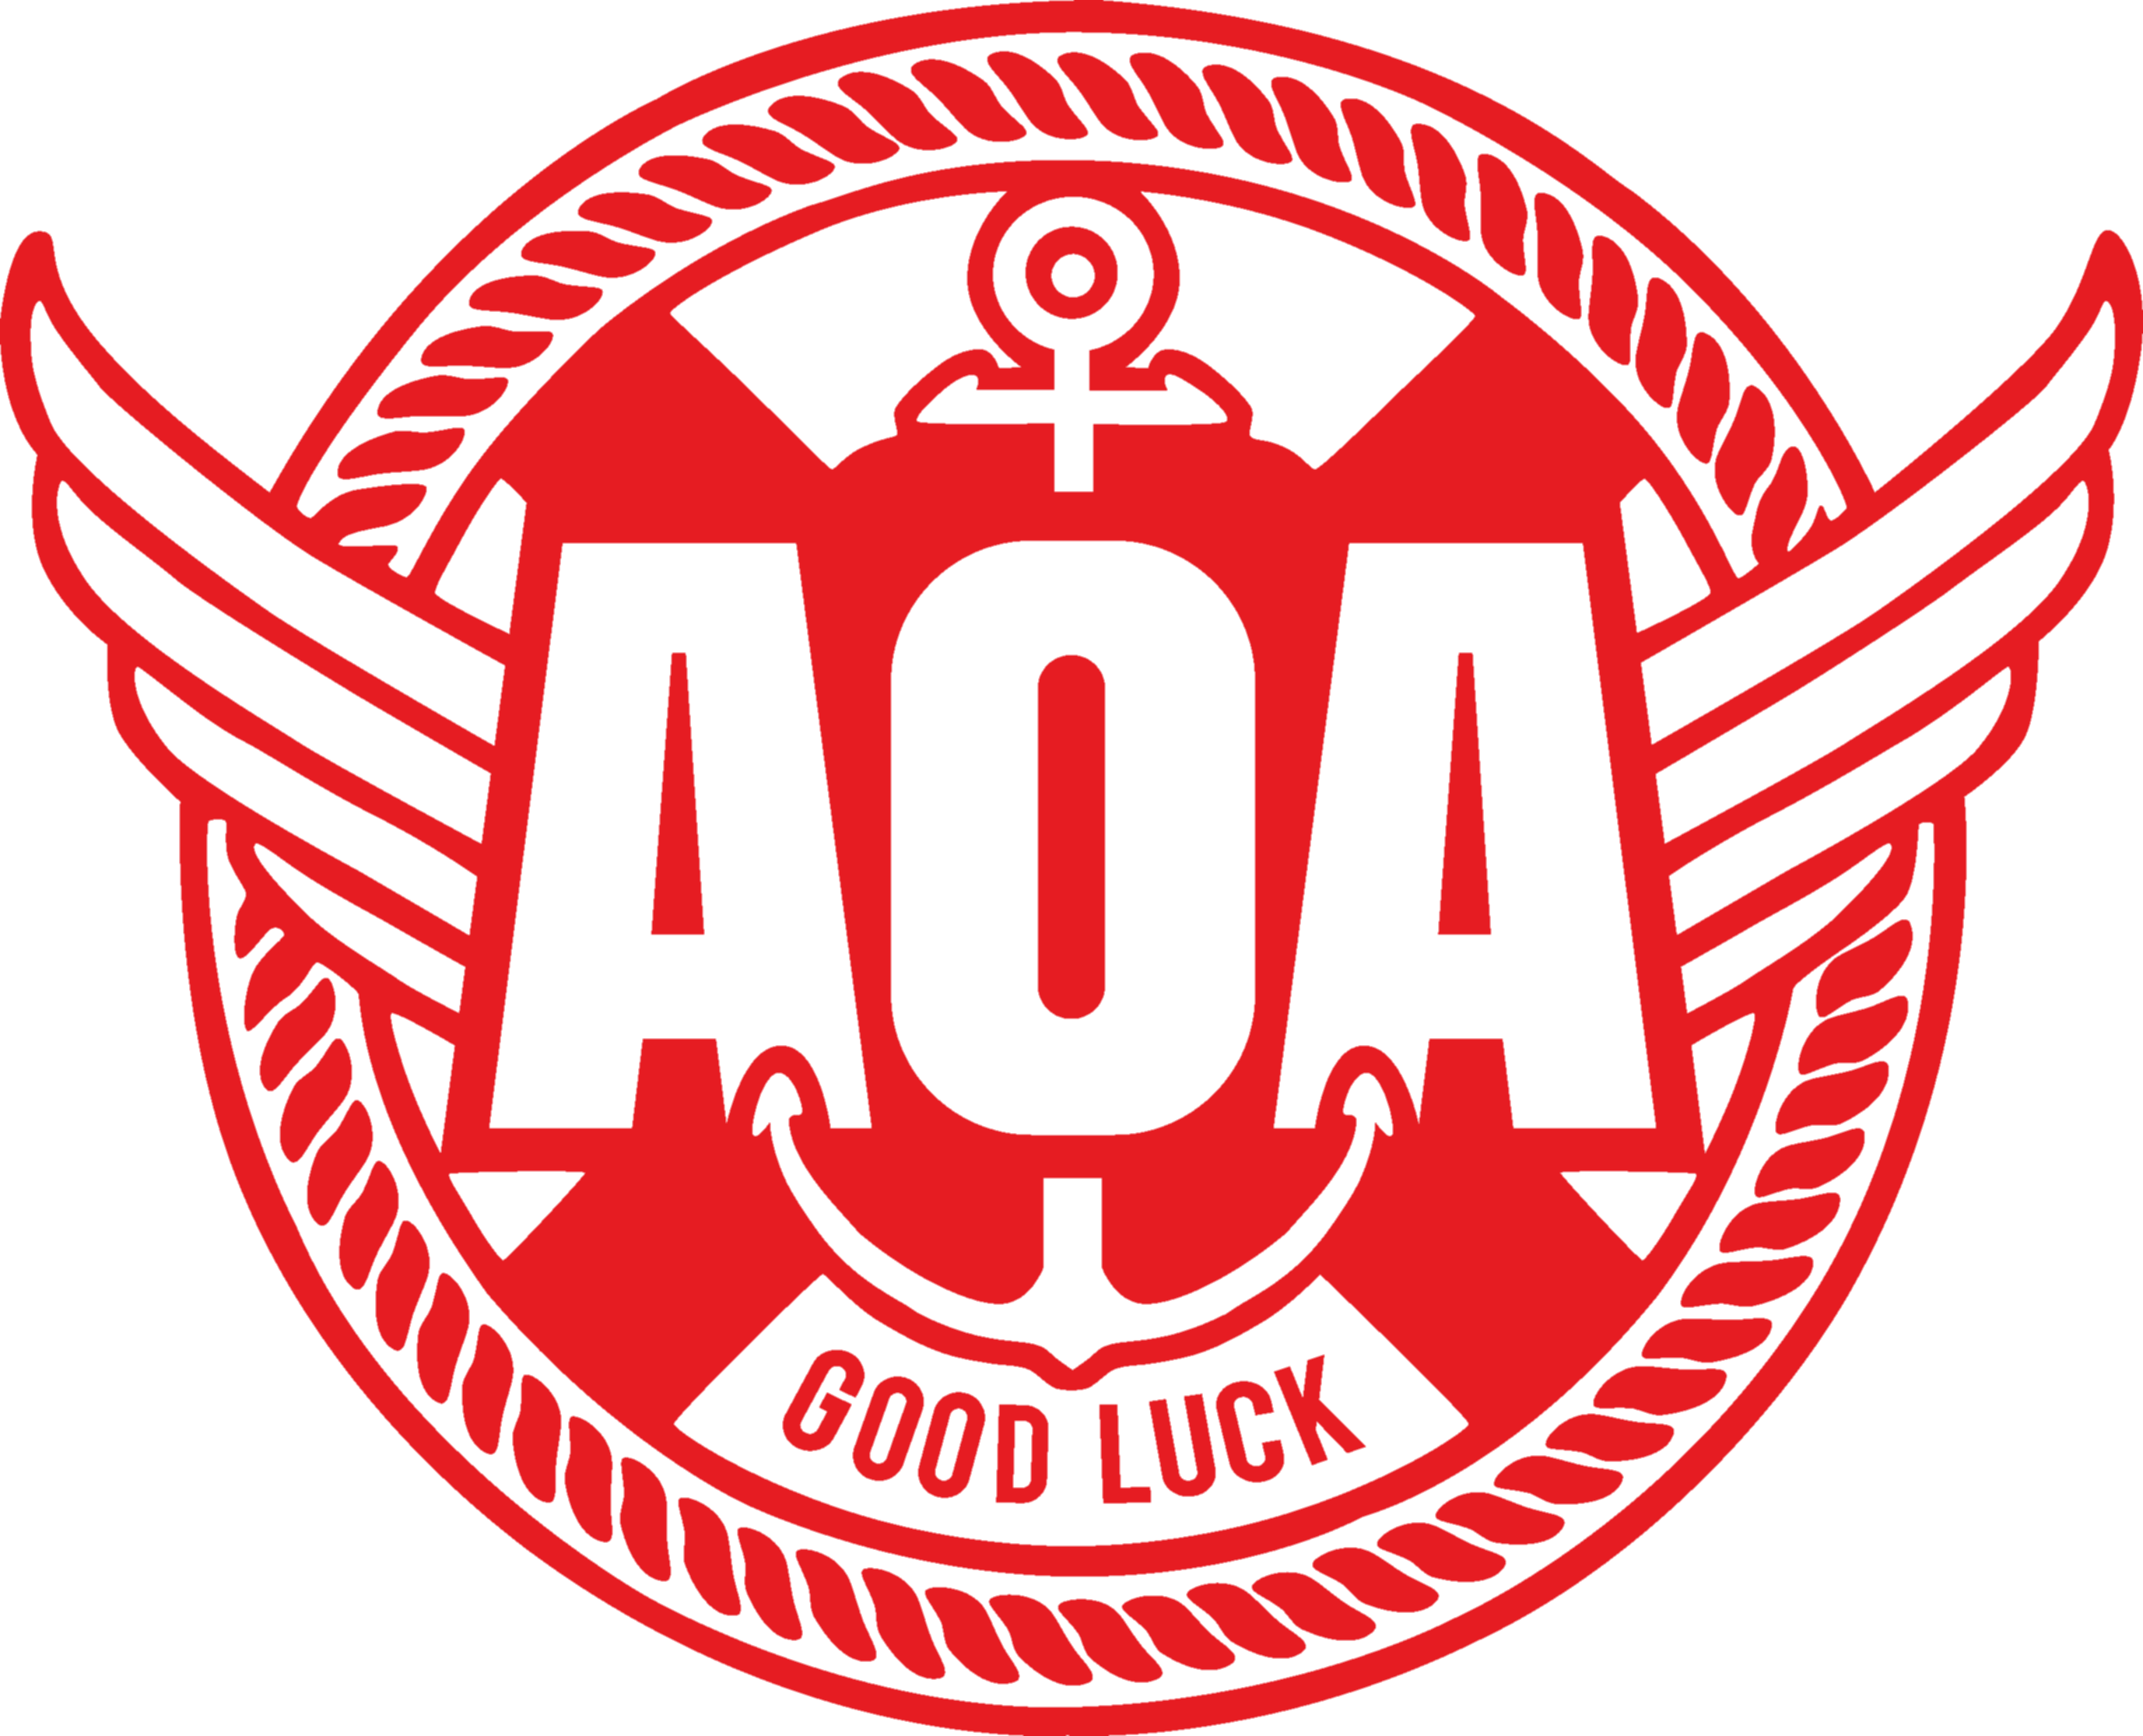 파일:AOA Good Luck_로고.png